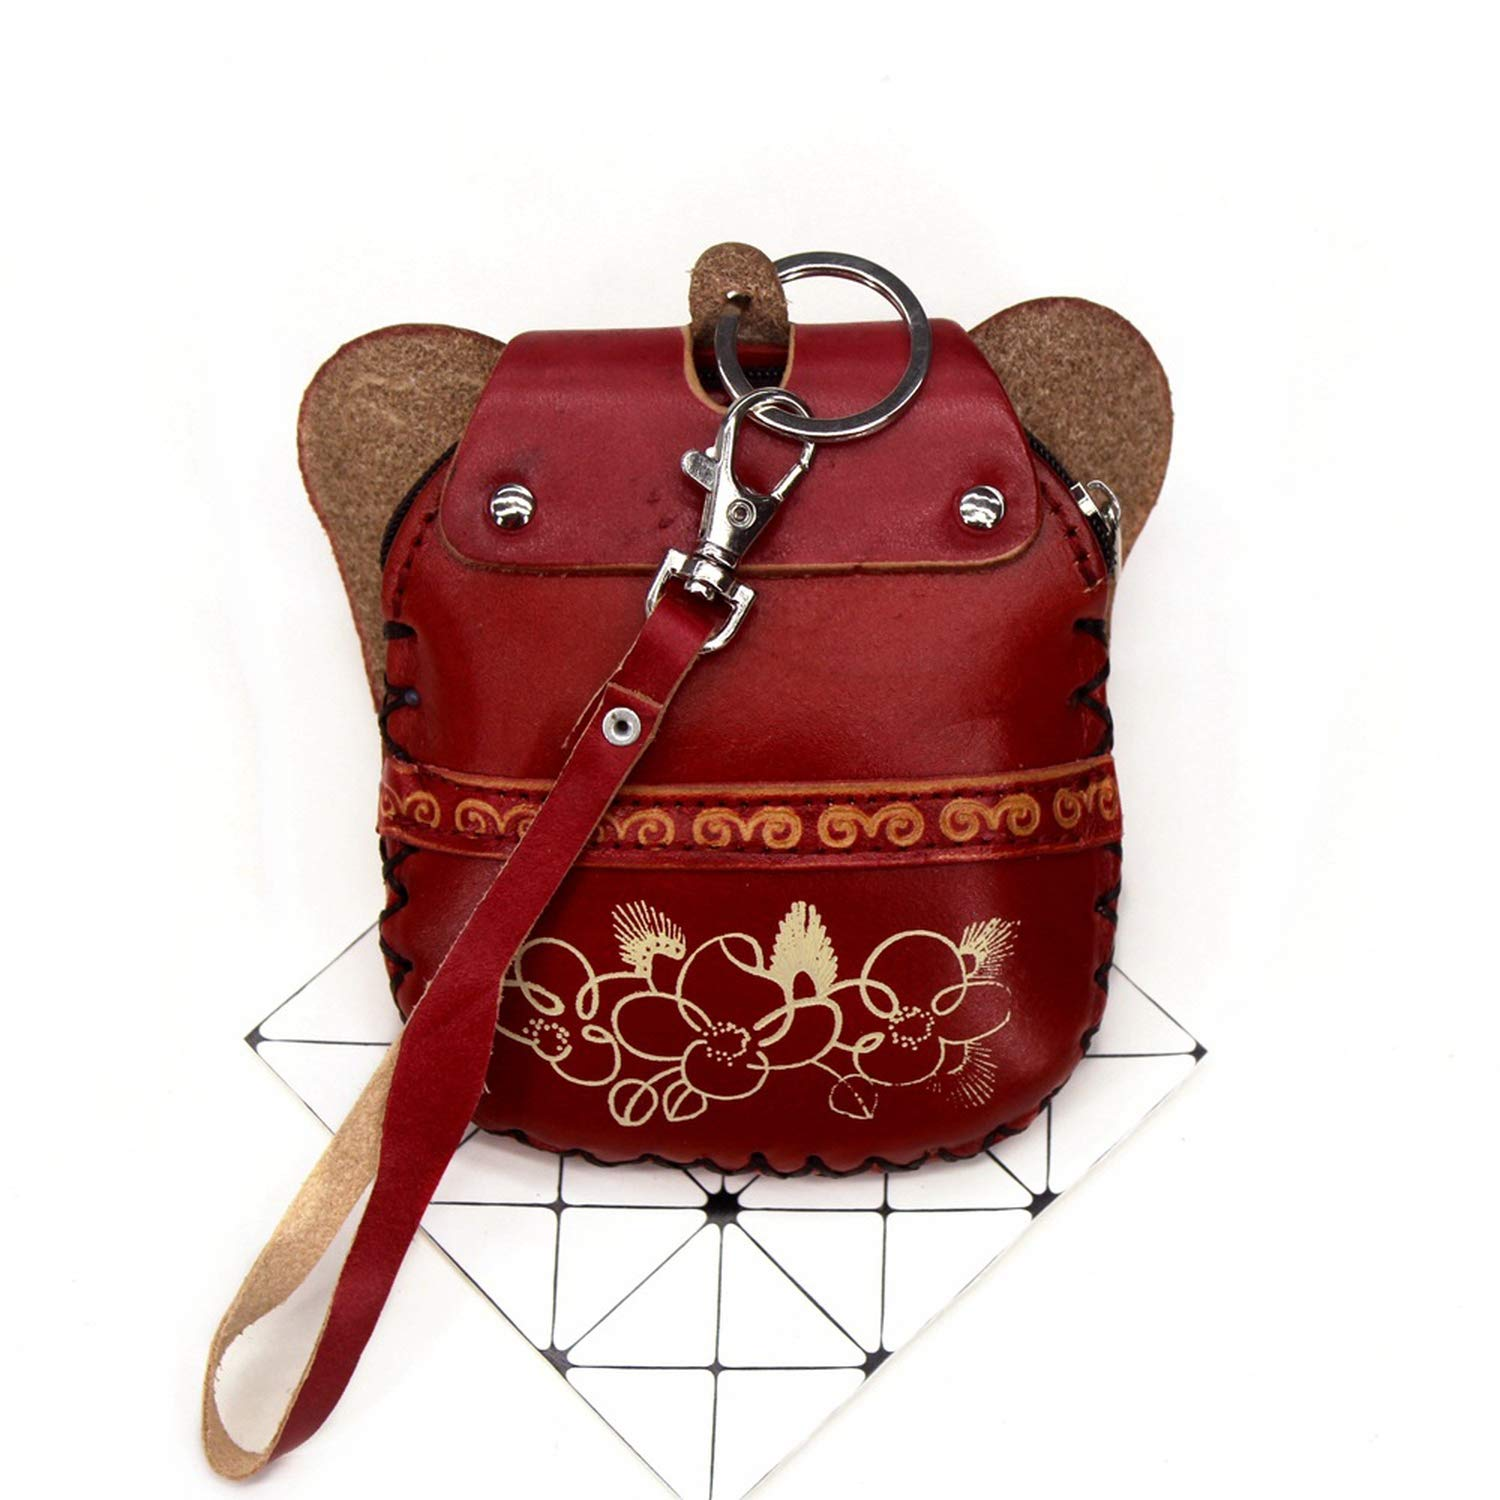 Genuine Leather Coin Purses Women Cute Animal Elephant Model Design Of Purse Girls Coin Bags Pouch